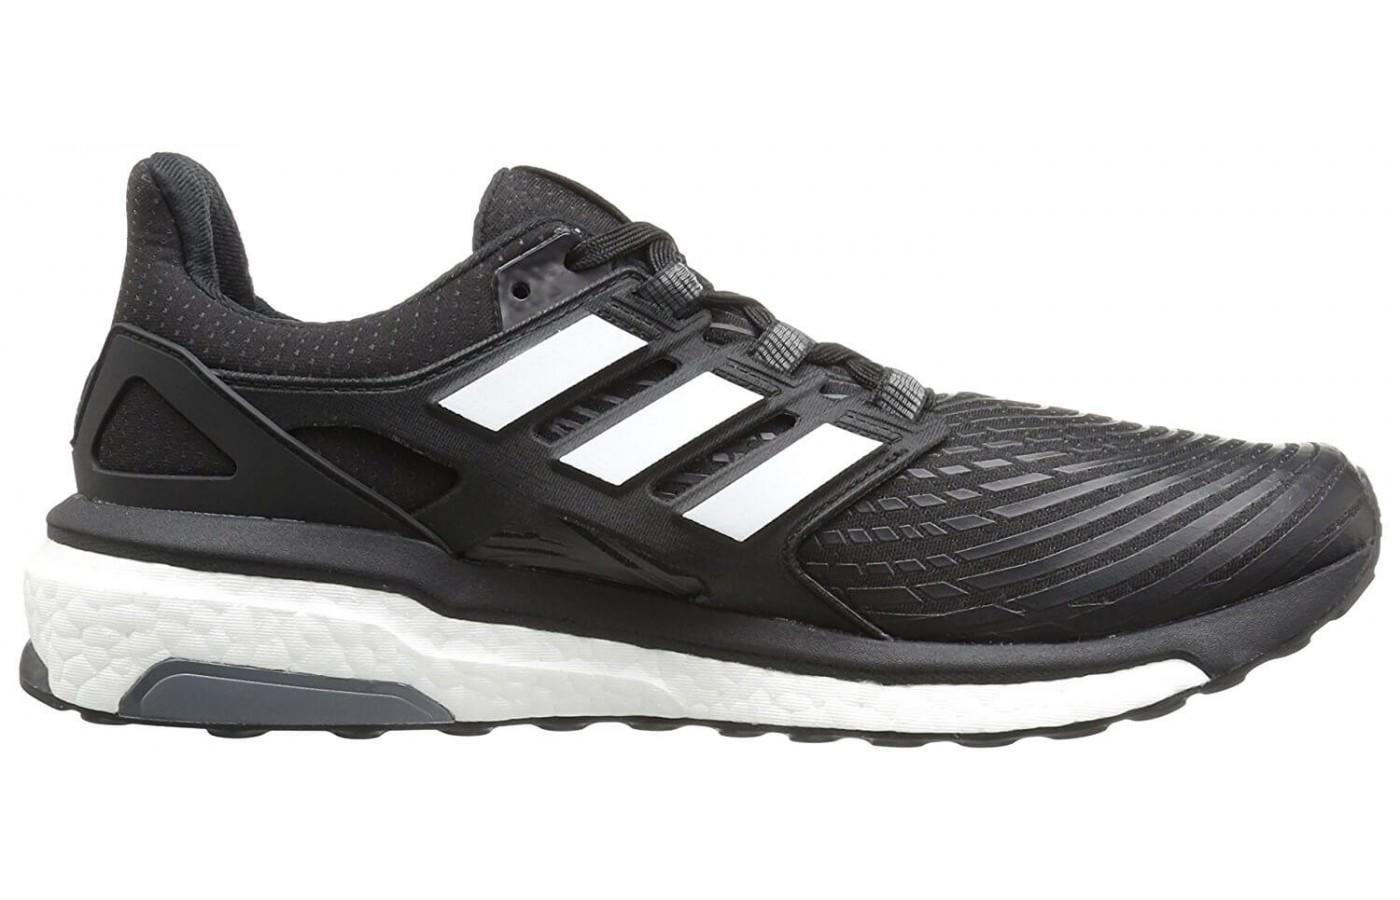 cheap for discount 57b50 58d27 ... the Adidas Energy Boost has soft cushioning in the heel ...